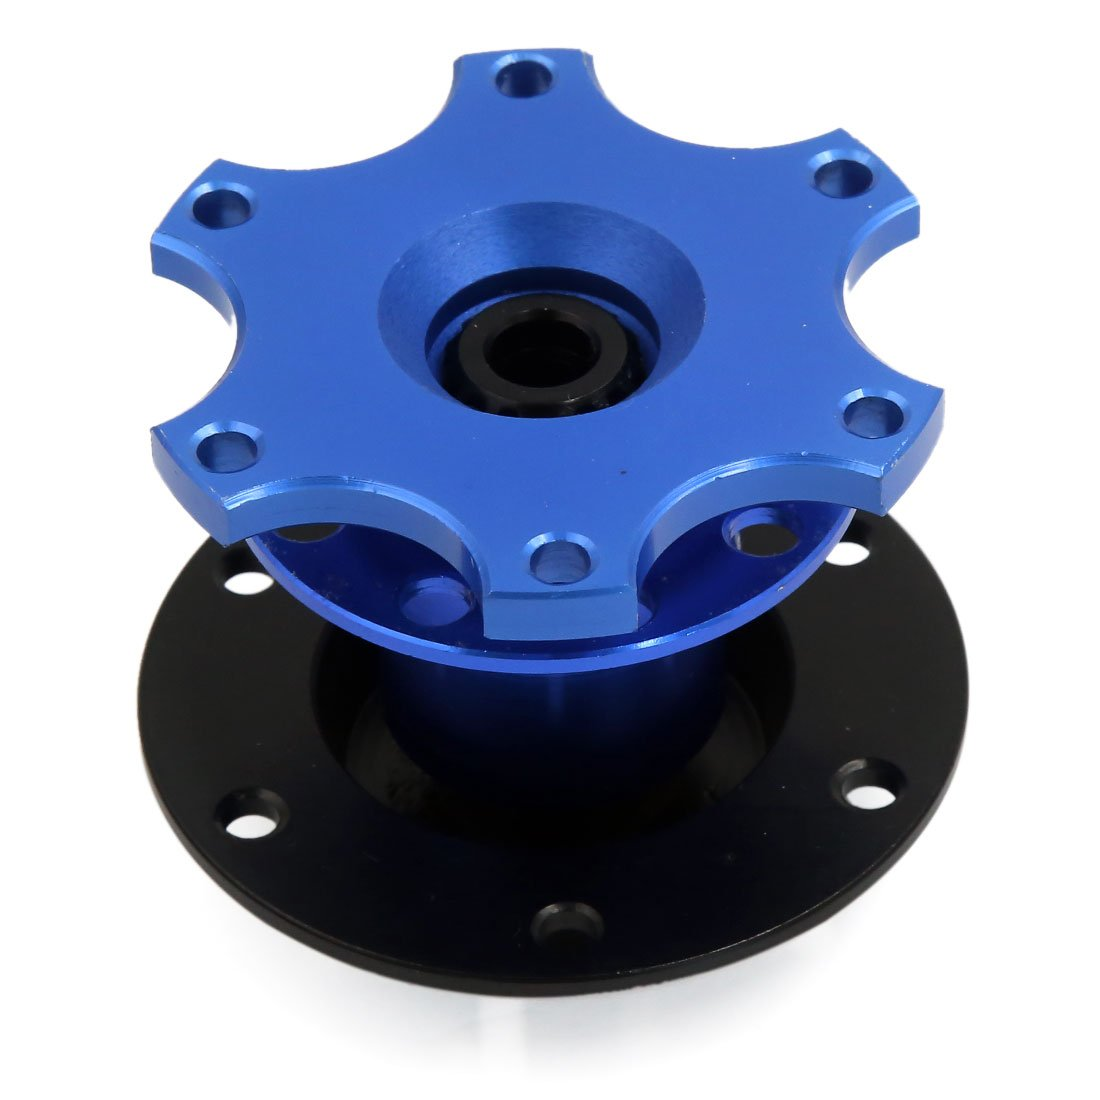 uxcell Metal Rolling Ball Type Steering Wheel Hub Adapter Kit for Auto Car